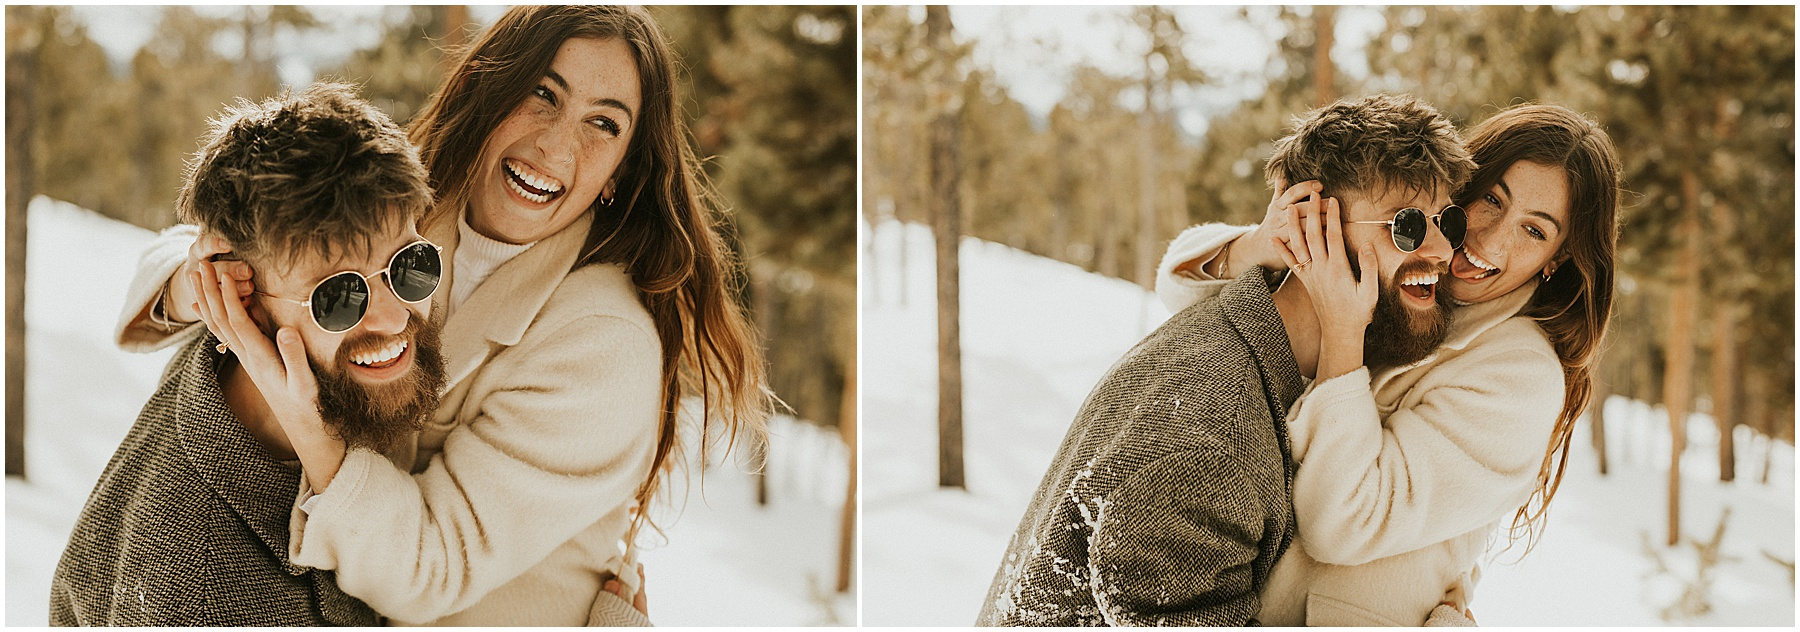 Proposal and engagement session in Breckenridge, Colorado Saphire Point_0401.jpg